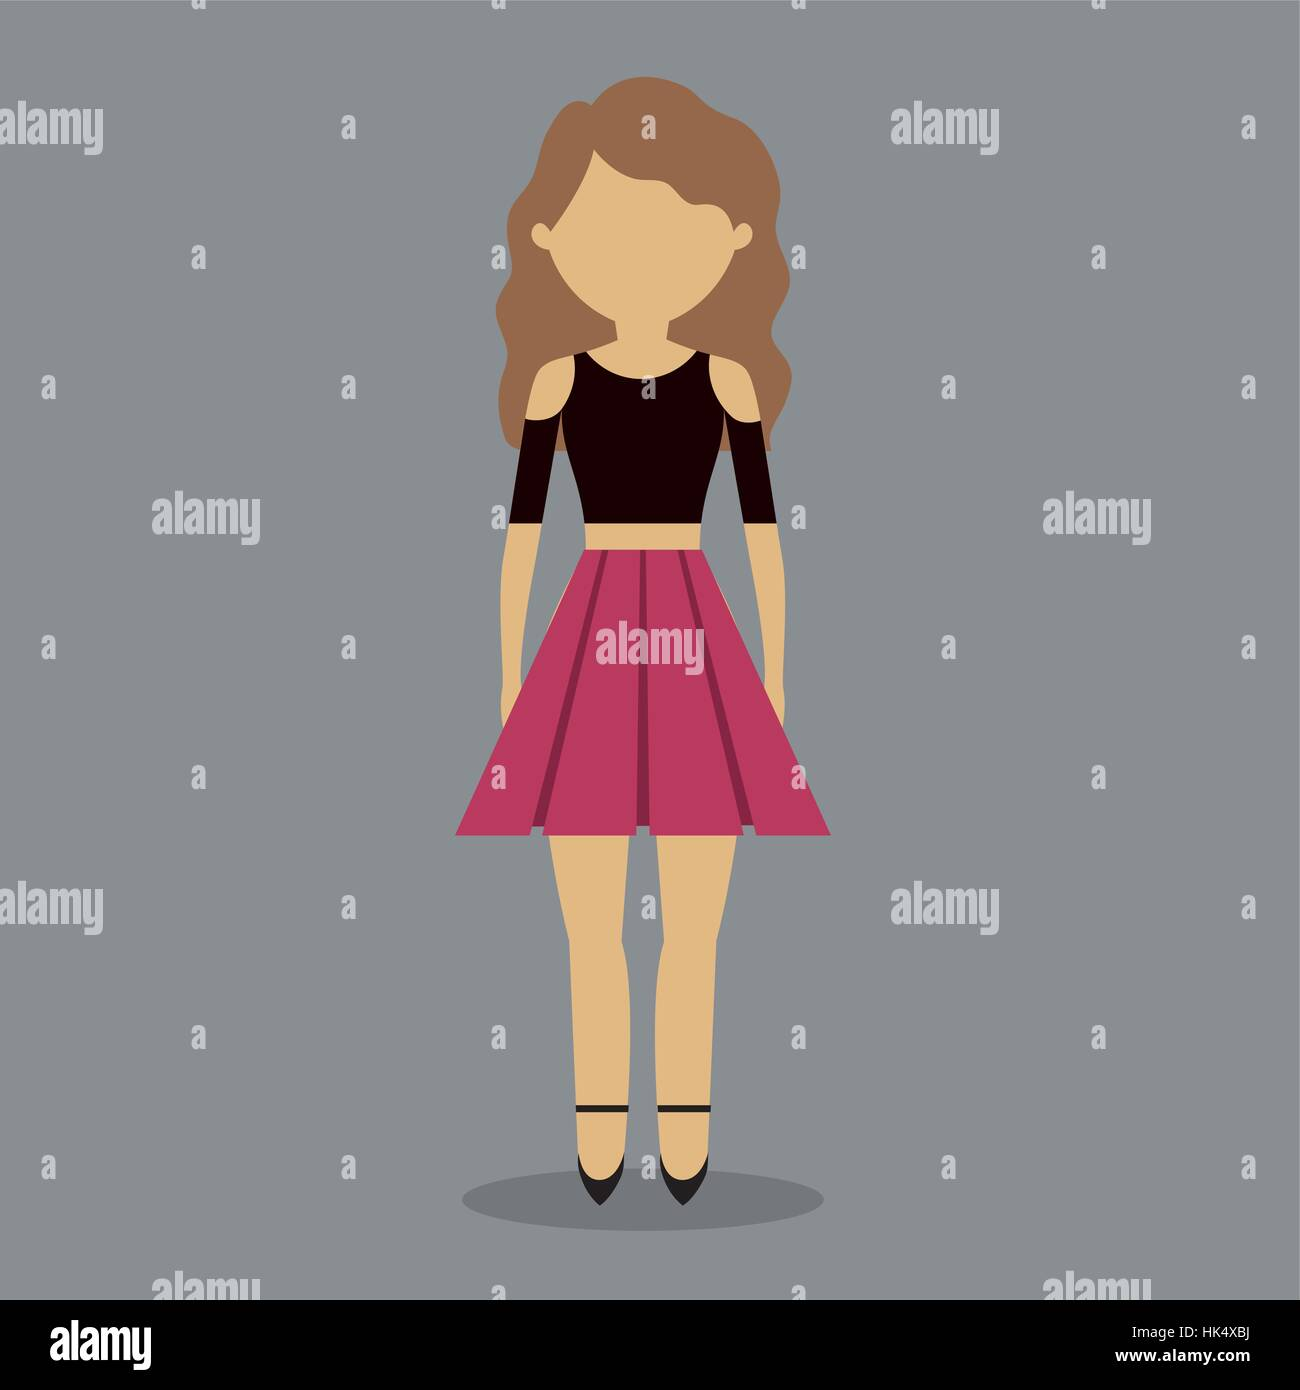 0c87d0b3770235 faceless young fashionable woman wearing crop top with skirt icon image vector  illustration design